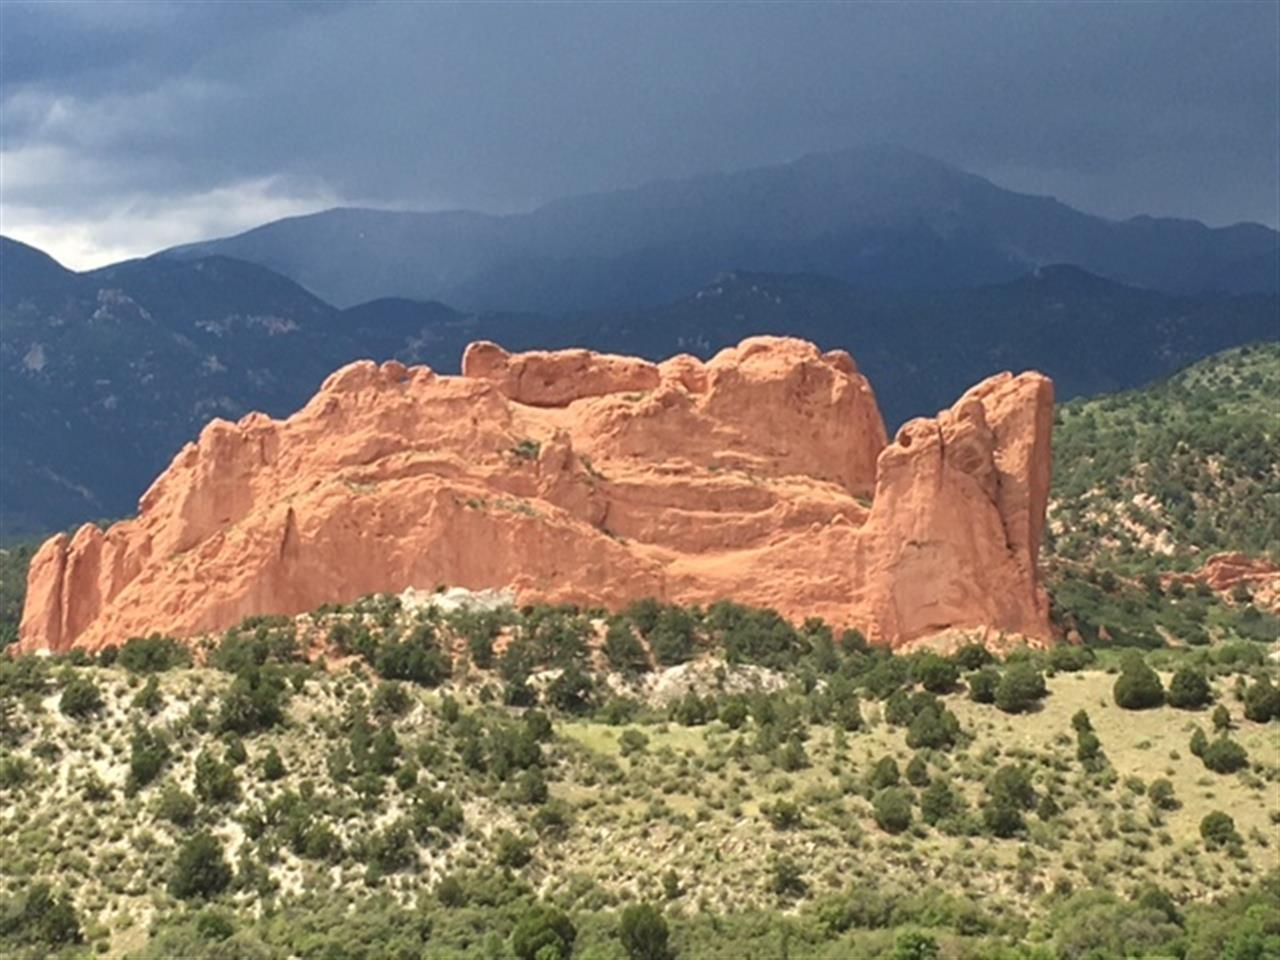 Changing weather over Garden of the Gods.